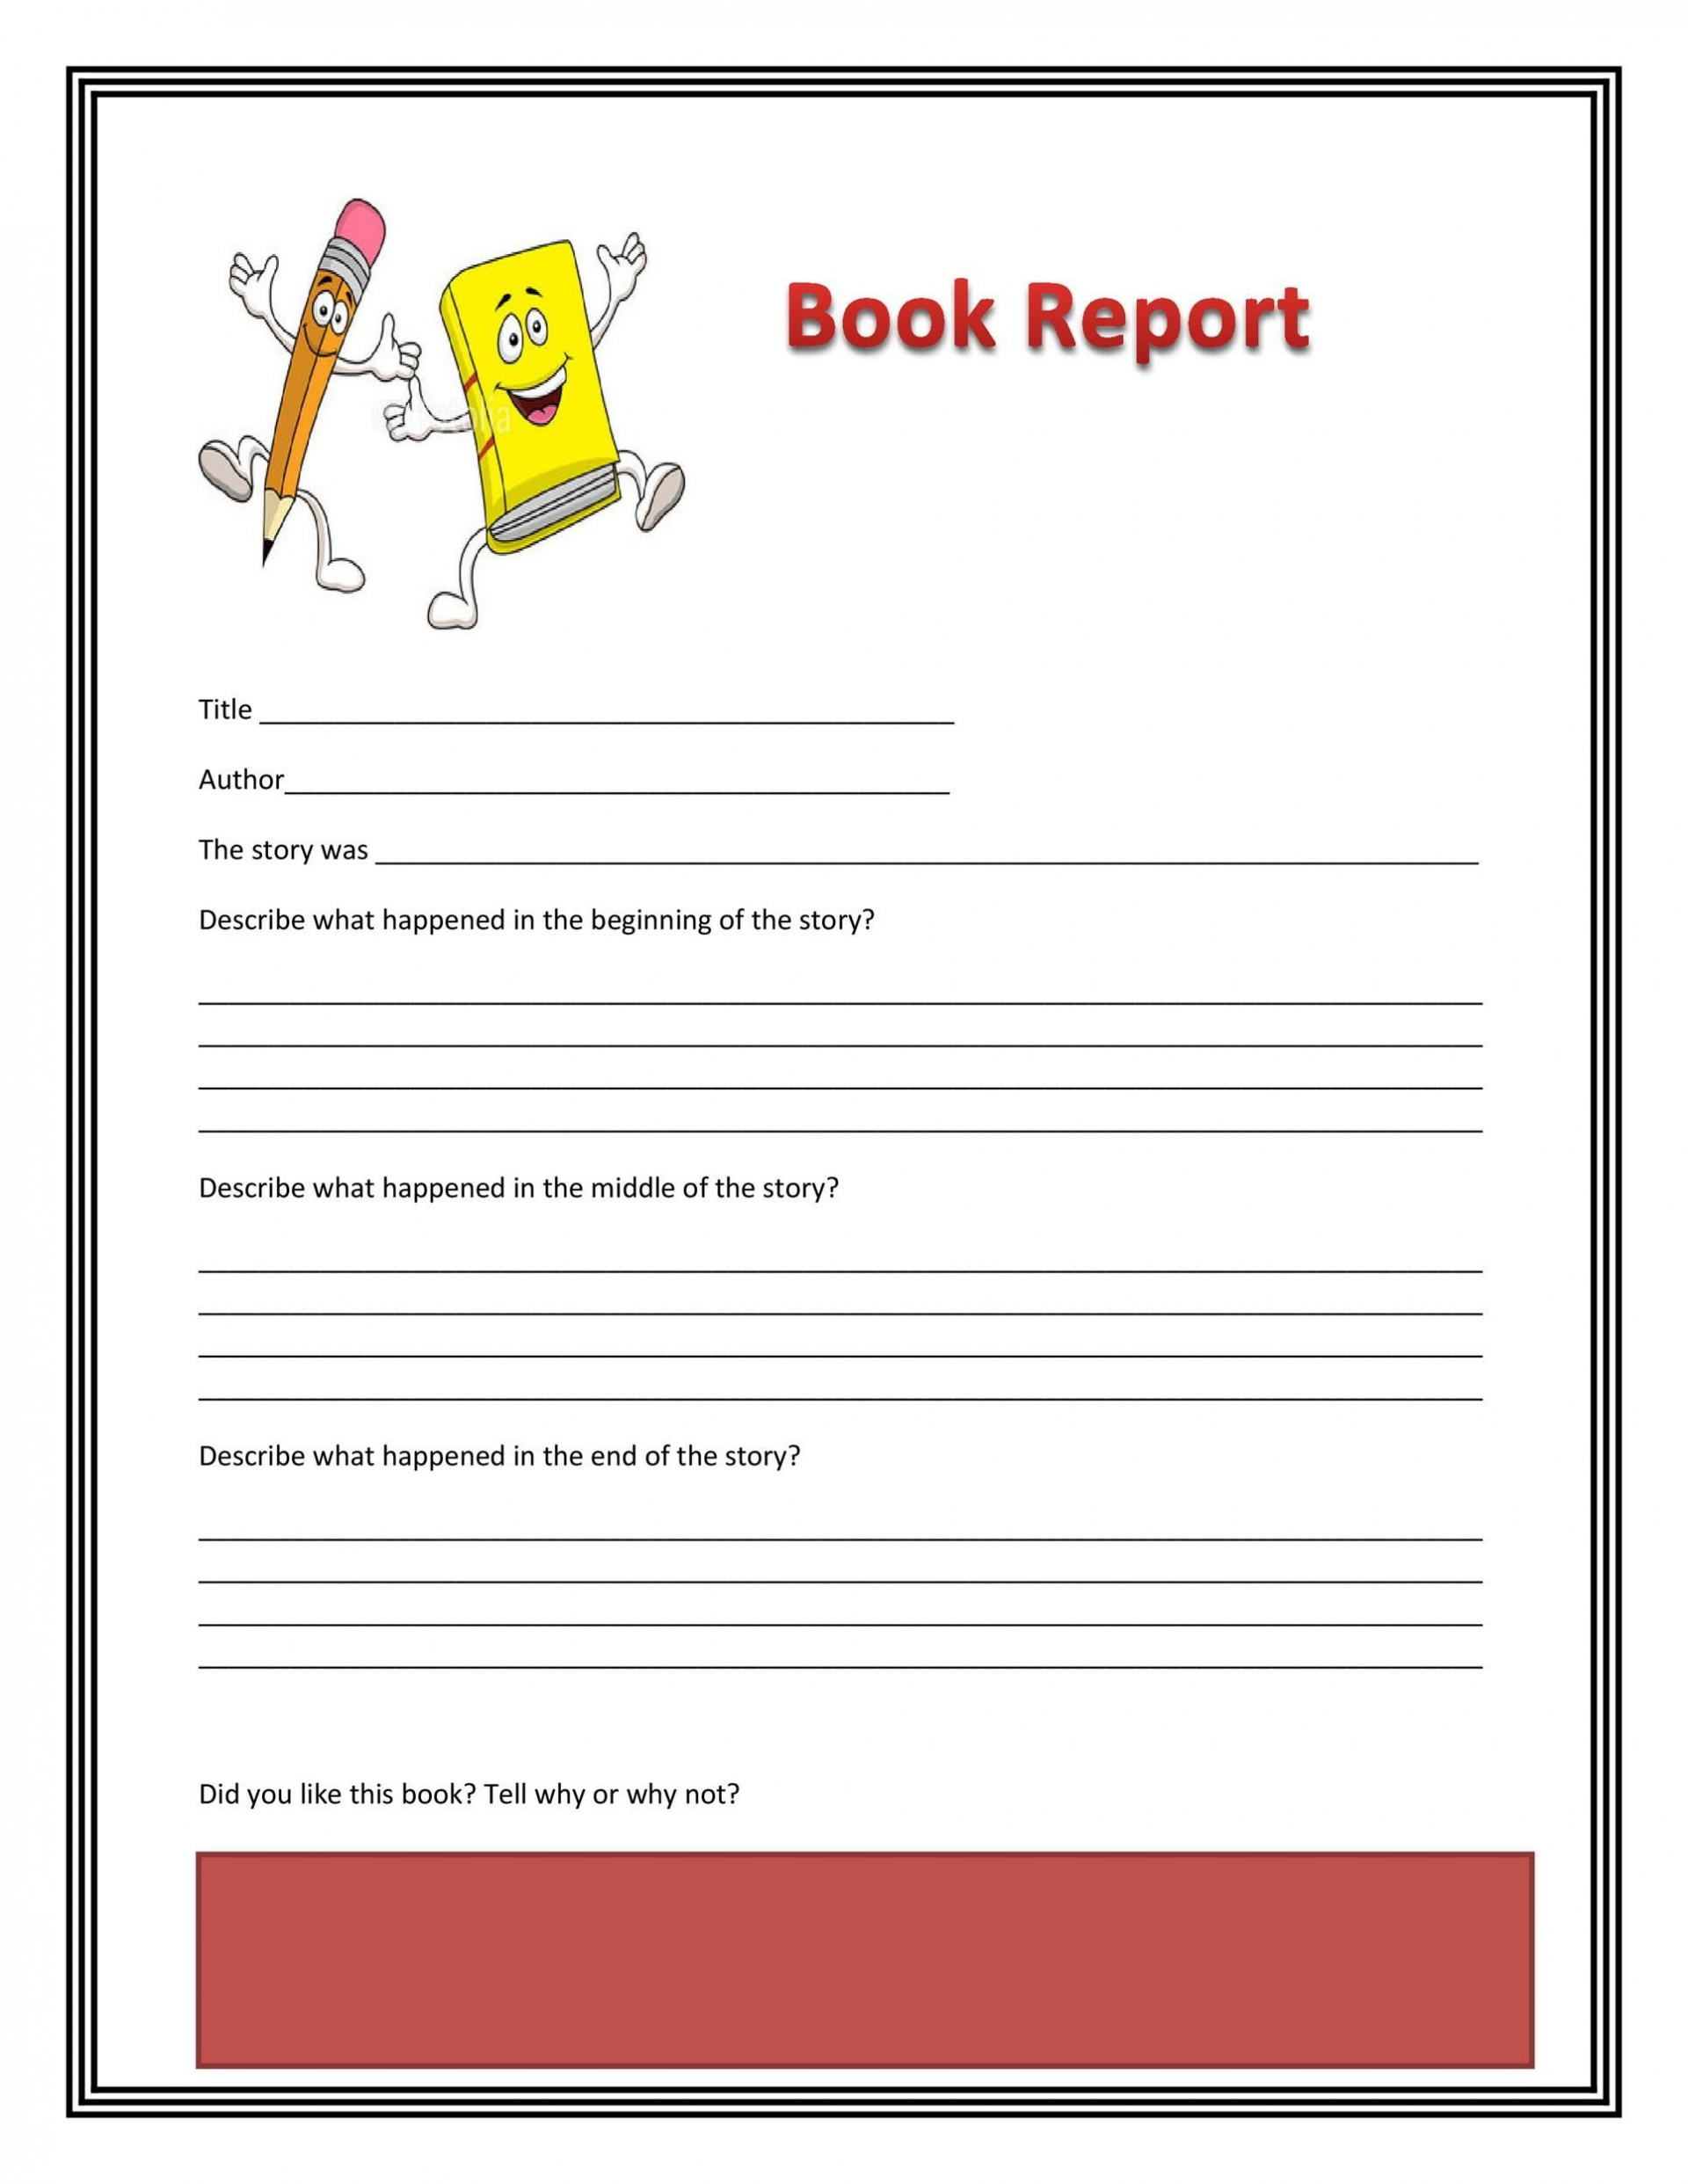 002 Unforgettable Blank Book Report Form 6th Grade Picture  Free Printable Template1920